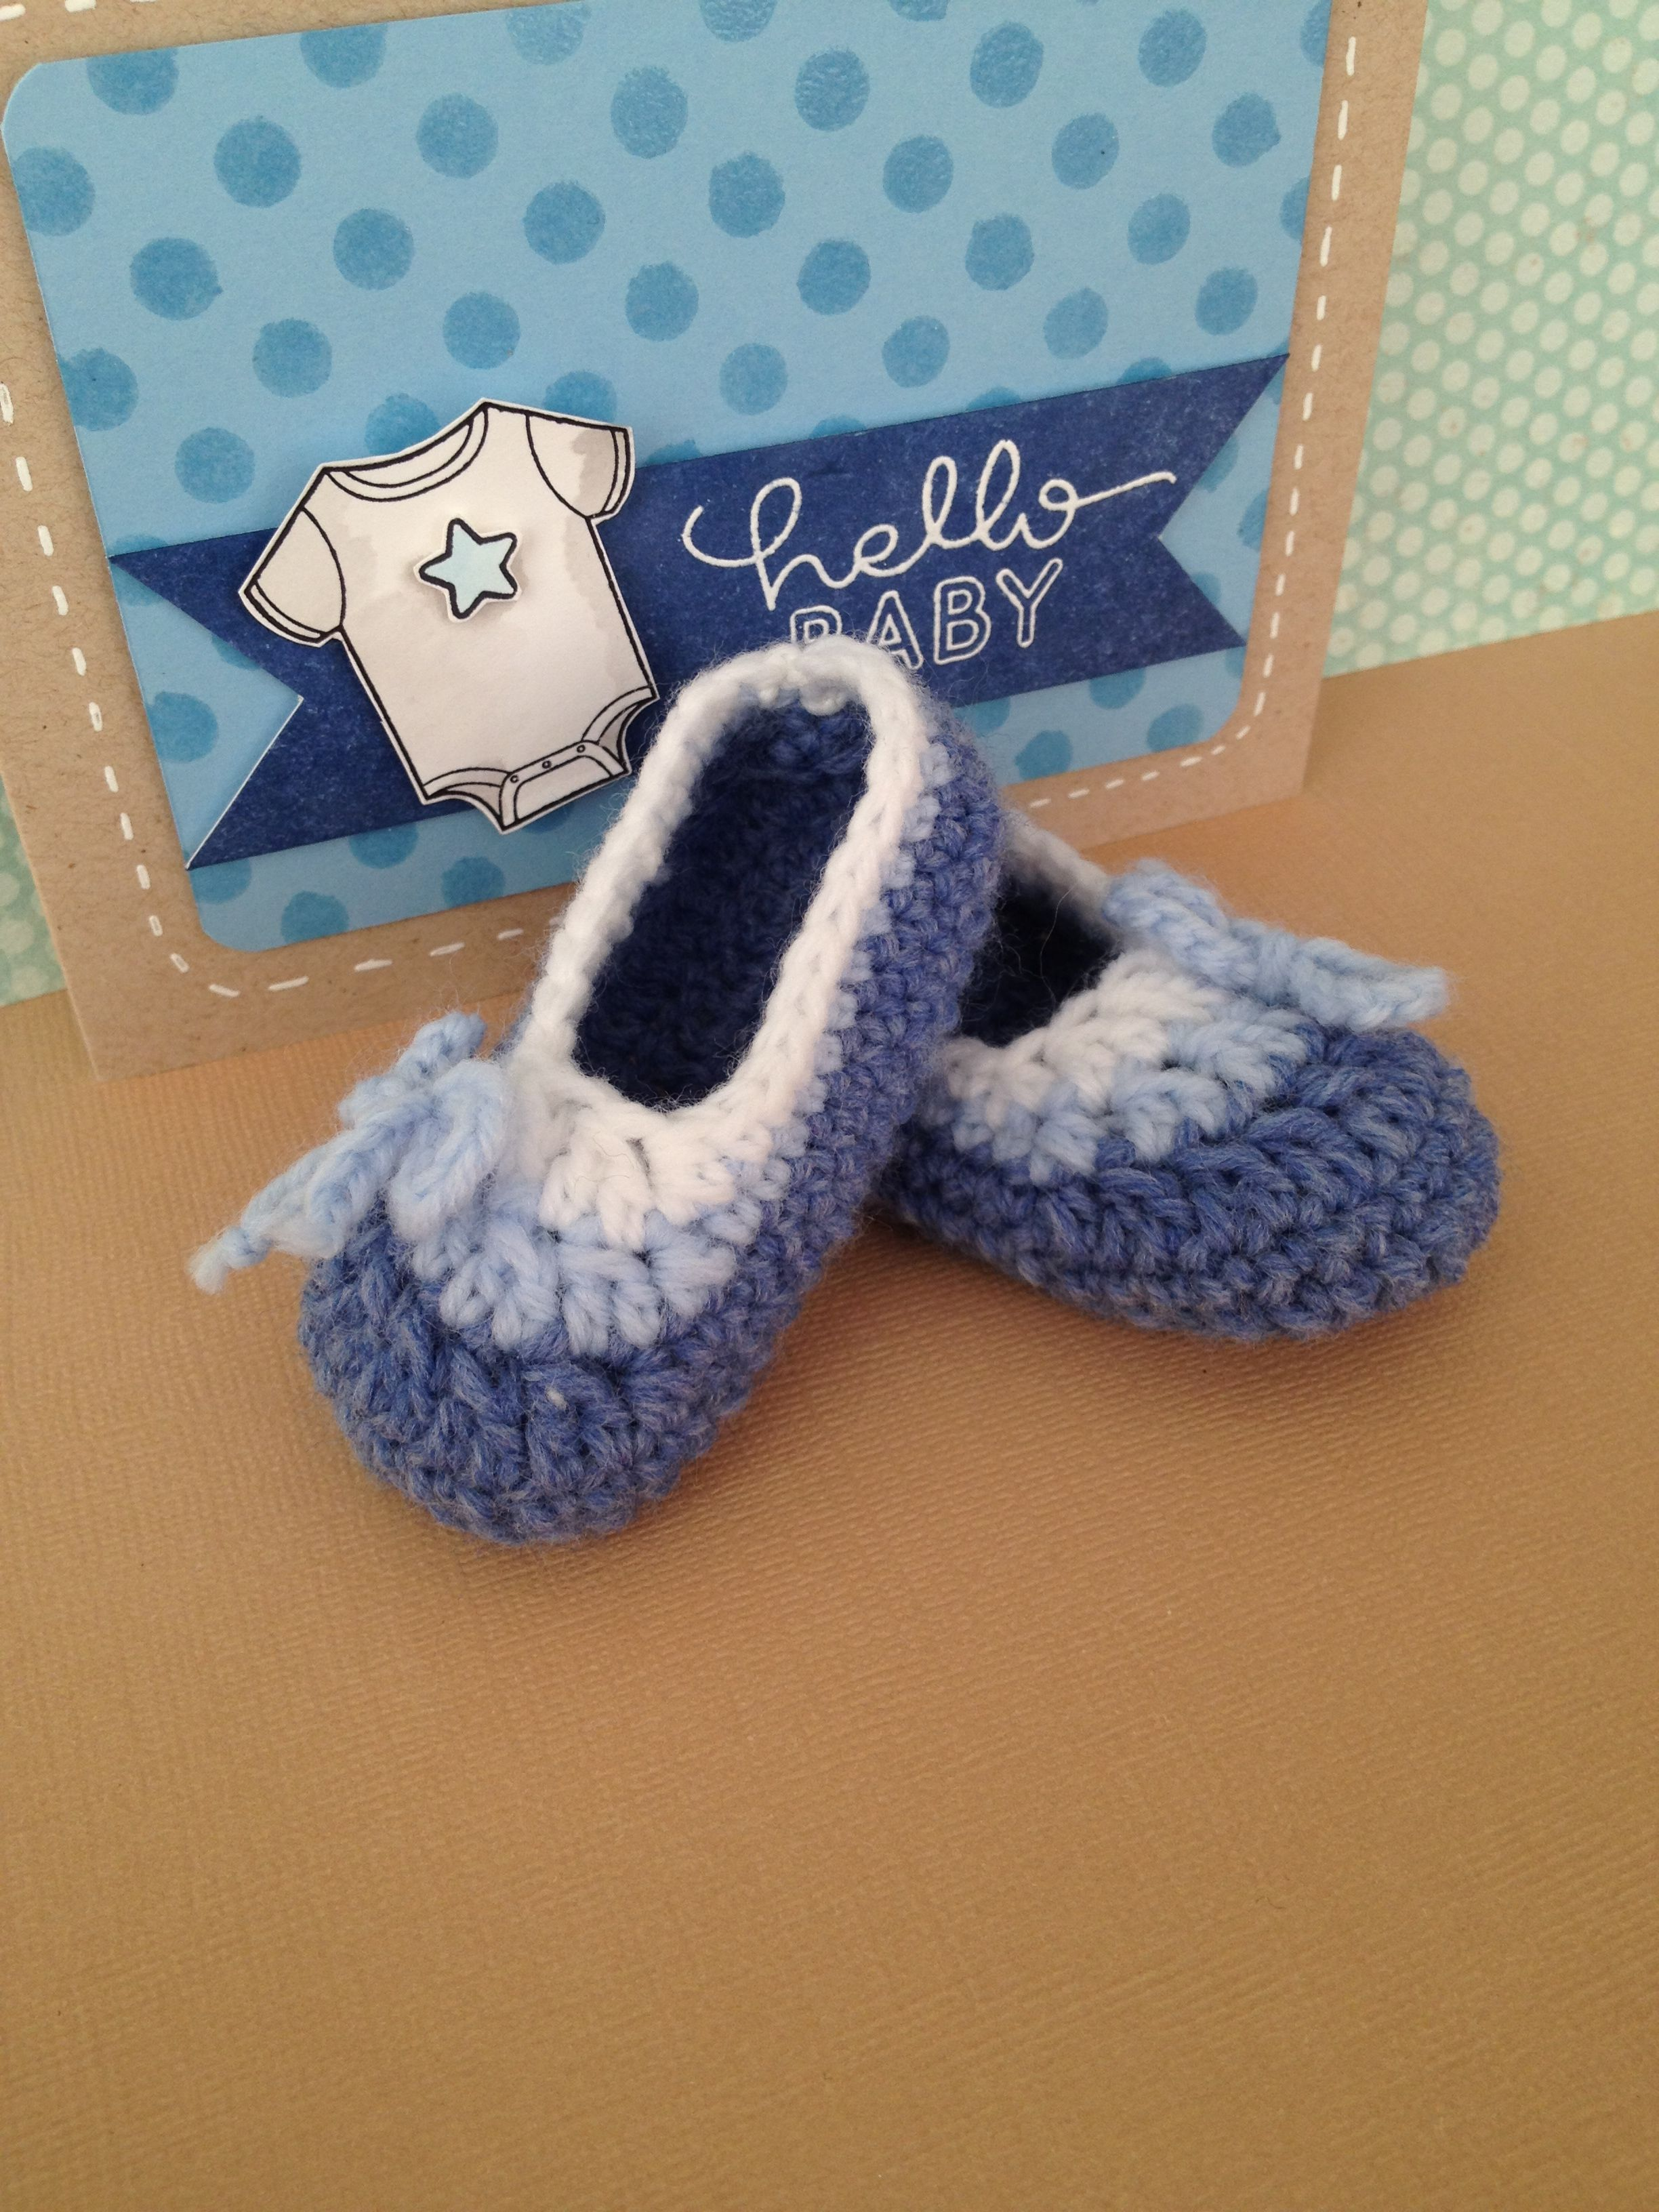 a4ec10c28d5b Crochet baby booties 0-3 months. Free patterns you can find on HappyBerry Crochet  YouTube Channel.